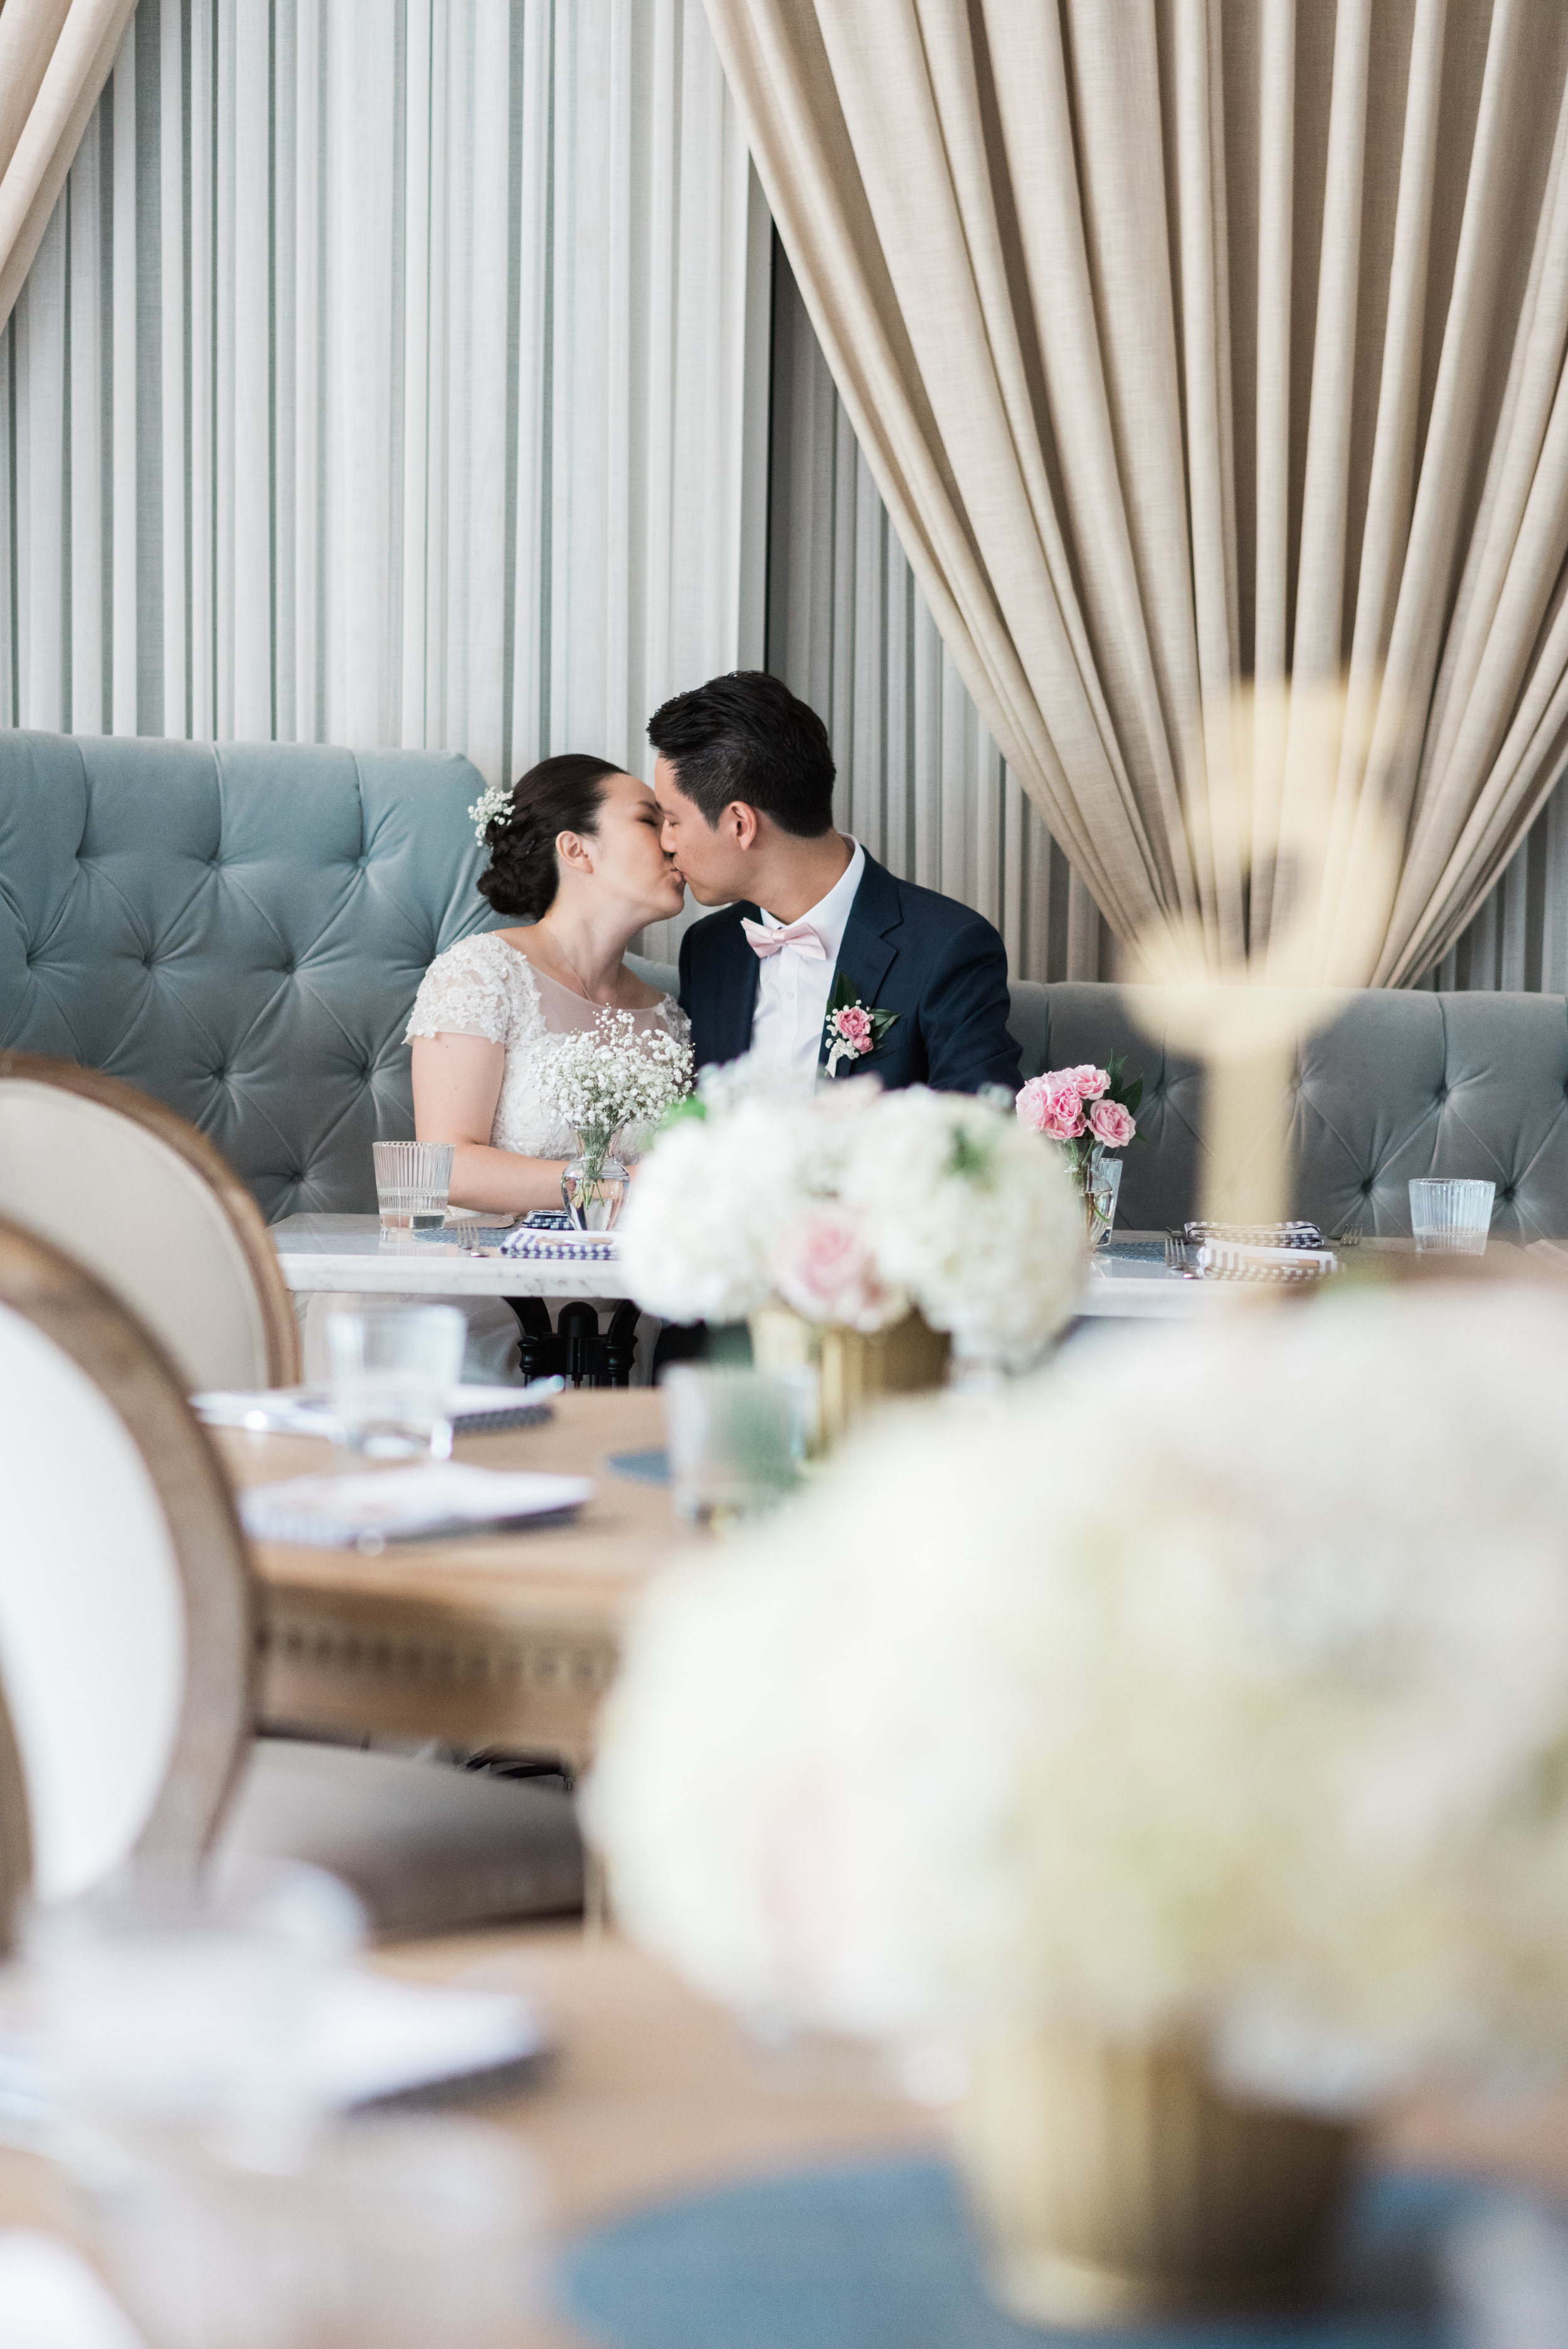 BLUUMBLVD Inside Colette Grand Cafe Wedding - White Hydrangea centerpiece-44.jpg